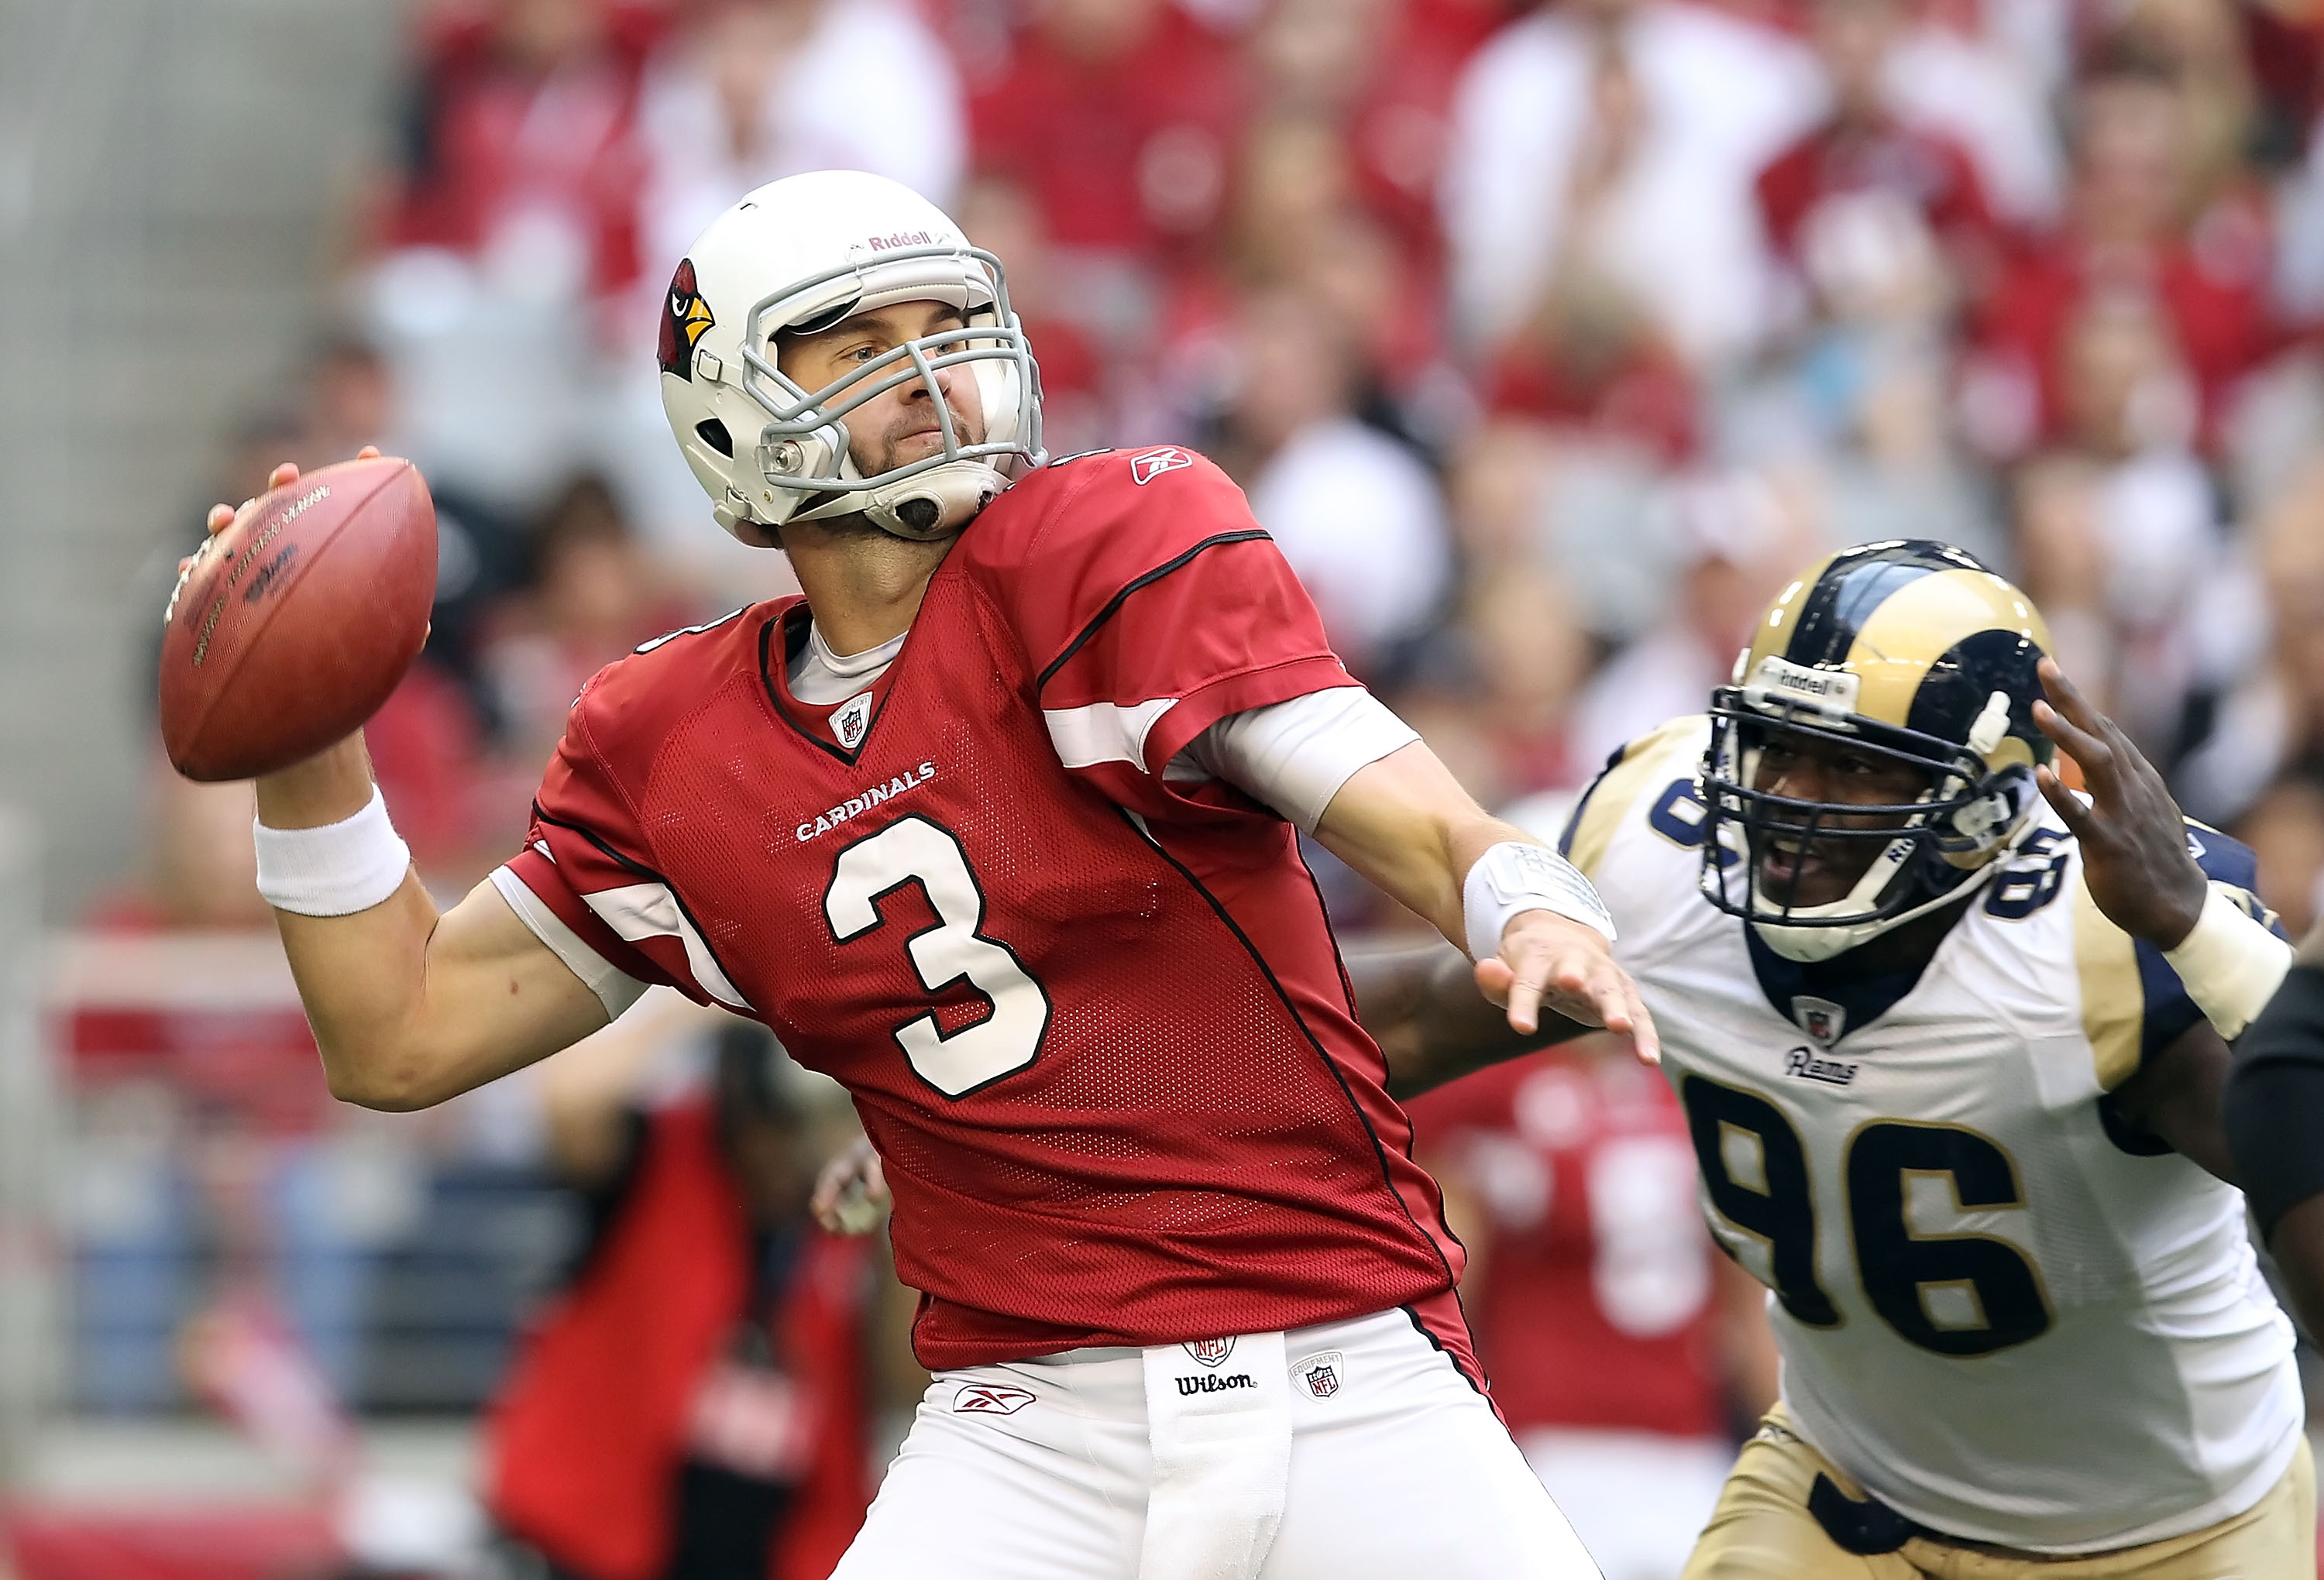 GLENDALE, AZ - DECEMBER 05:  Quarterback Derek Anderson #3 of the Arizona Cardinals throws a pass under pressure from James Hall #96 of the St. Louis Rams during the NFL game at the University of Phoenix Stadium on December 5, 2010 in Glendale, Arizona.